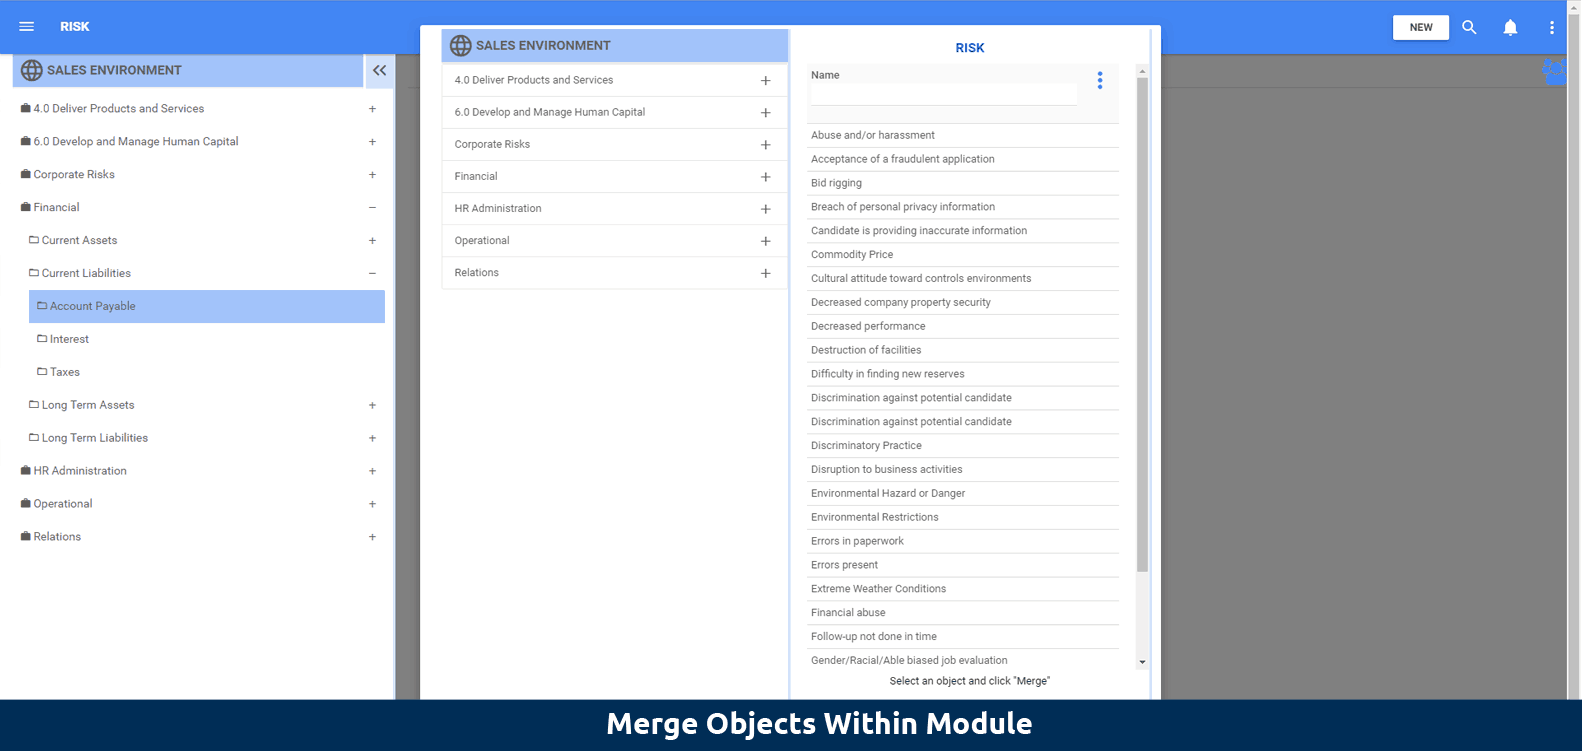 Merge objects within module